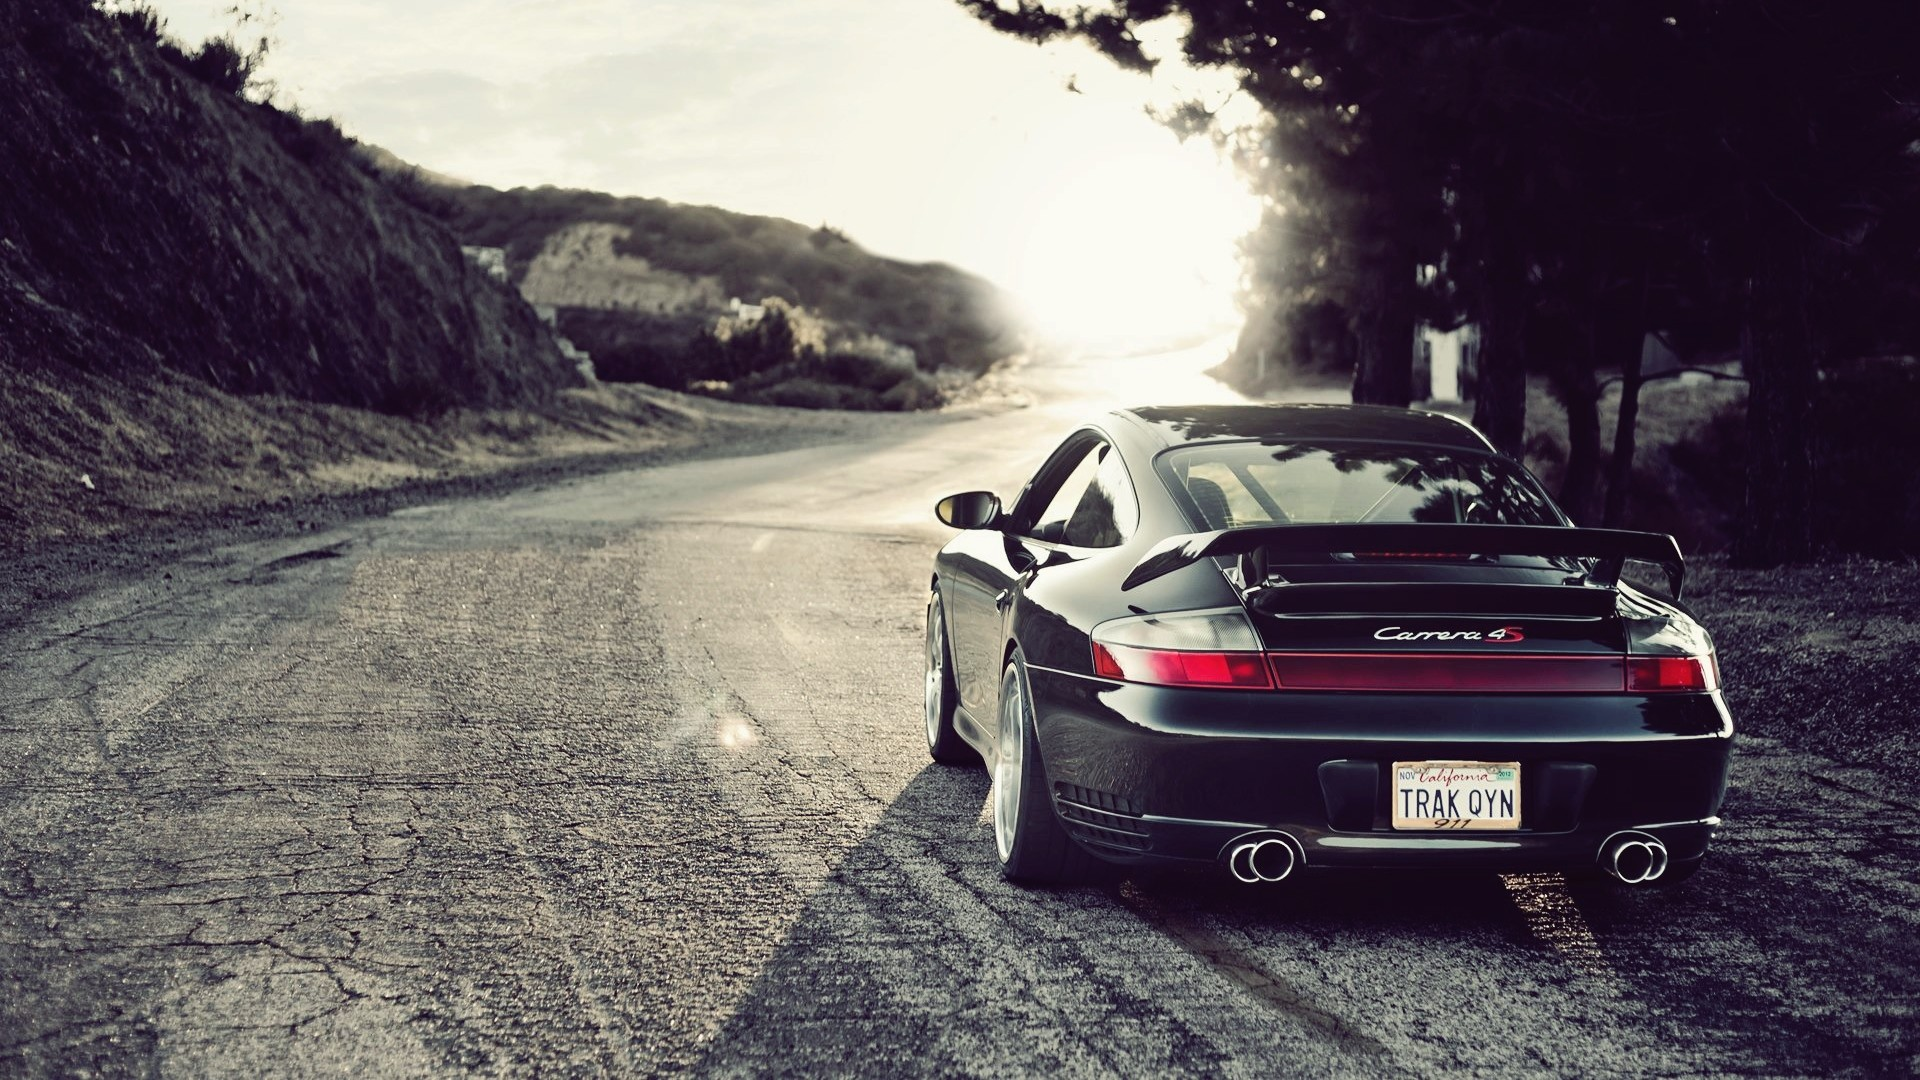 Porsche Wallpaper Android Phone